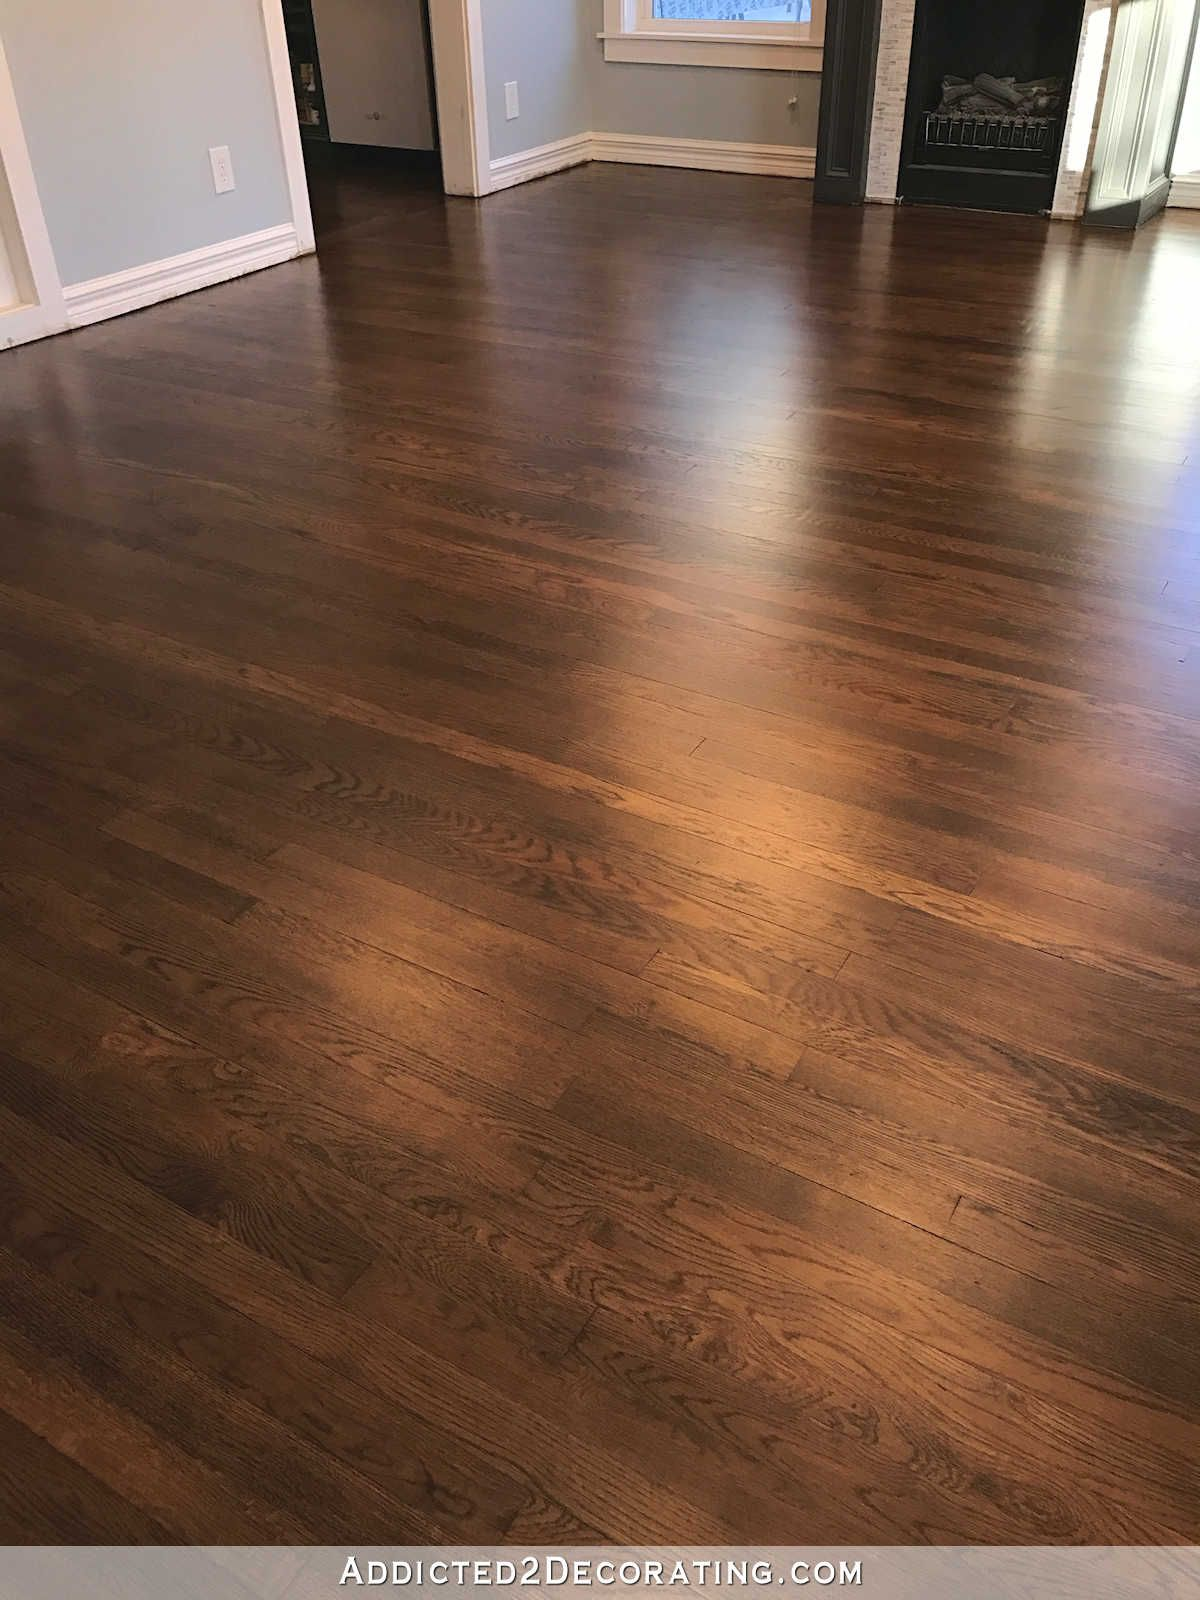 My Newly Refinished Red Oak Hardwood Floors Addicted 2 Decorating Red Oak Hardwood Floors Red Oak Floors Oak Hardwood Flooring